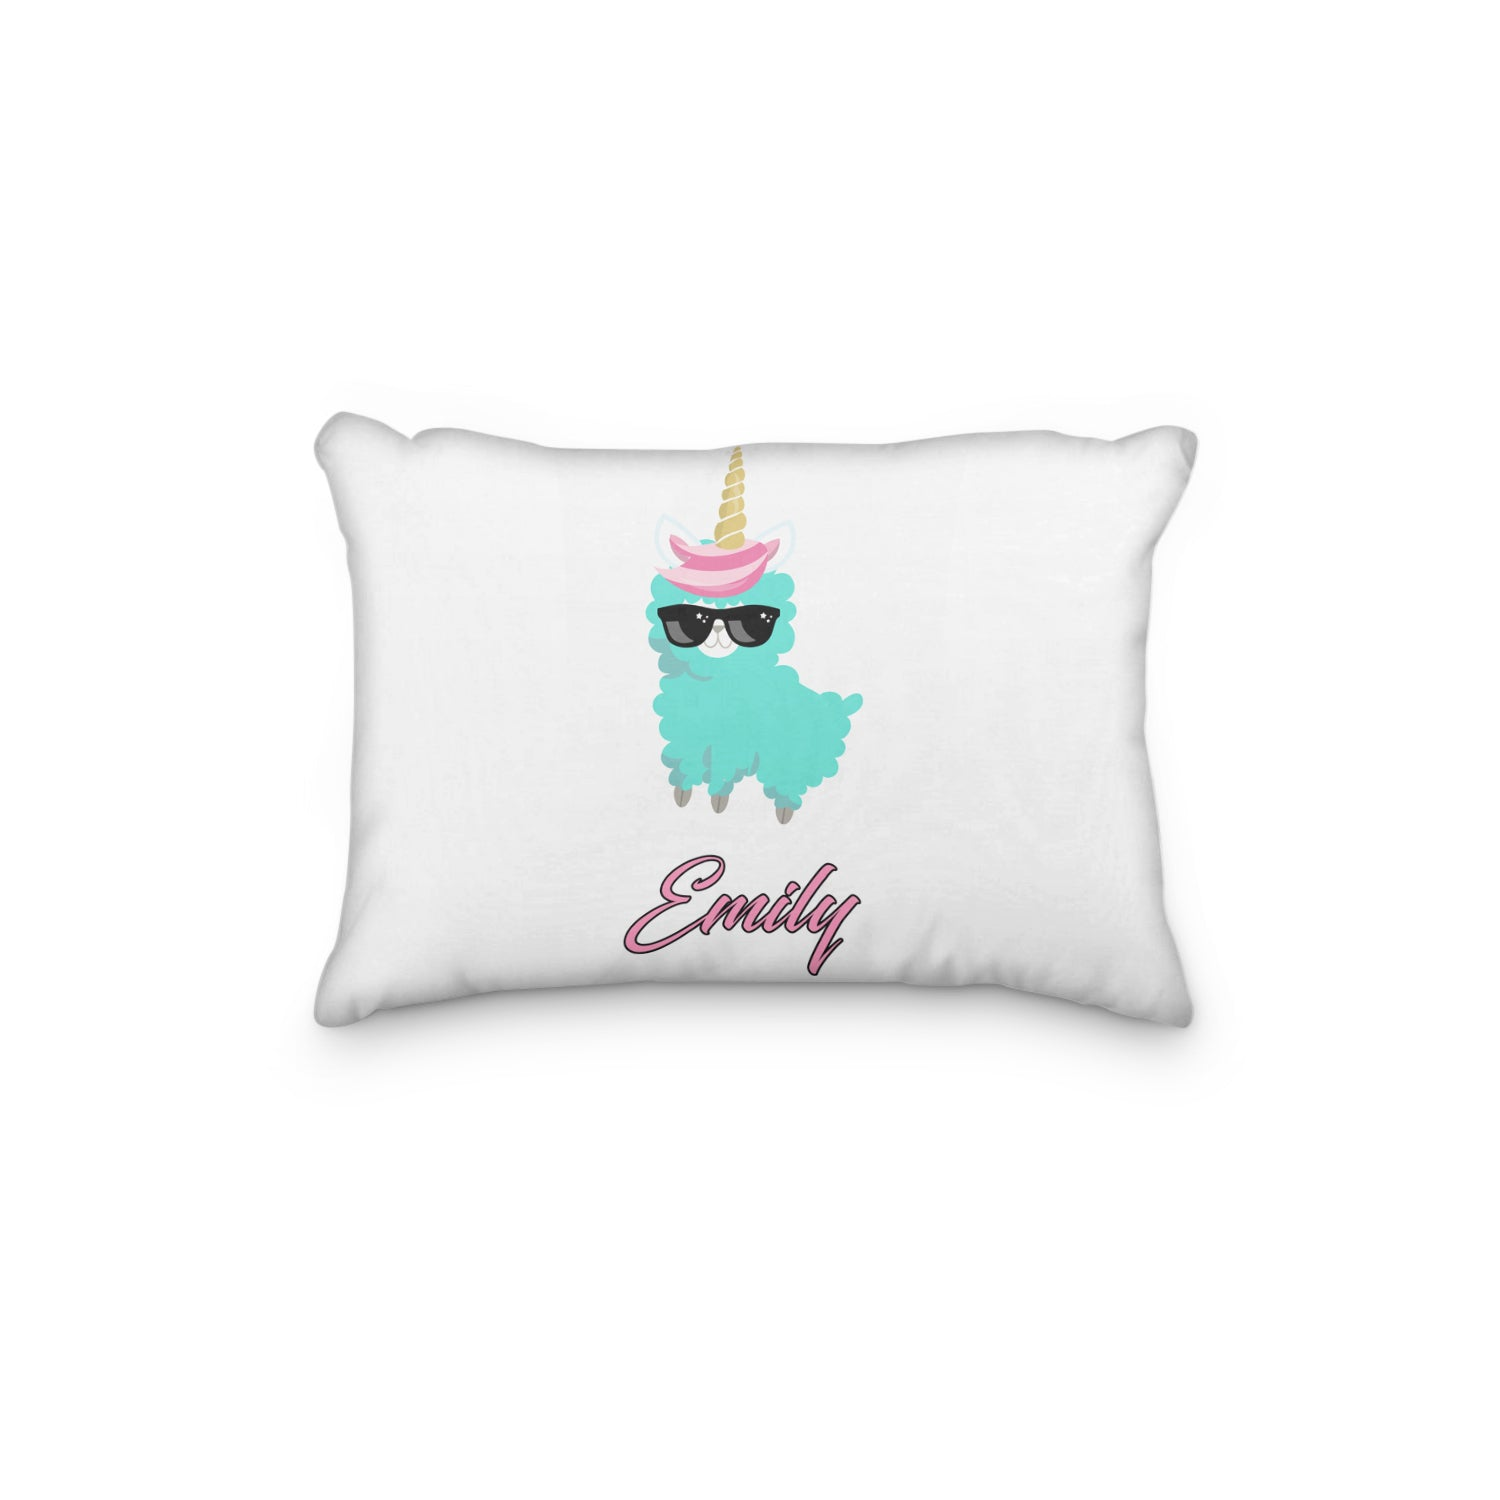 Llama Sunglasses Teal Personalized Pillowcase - Incandescently